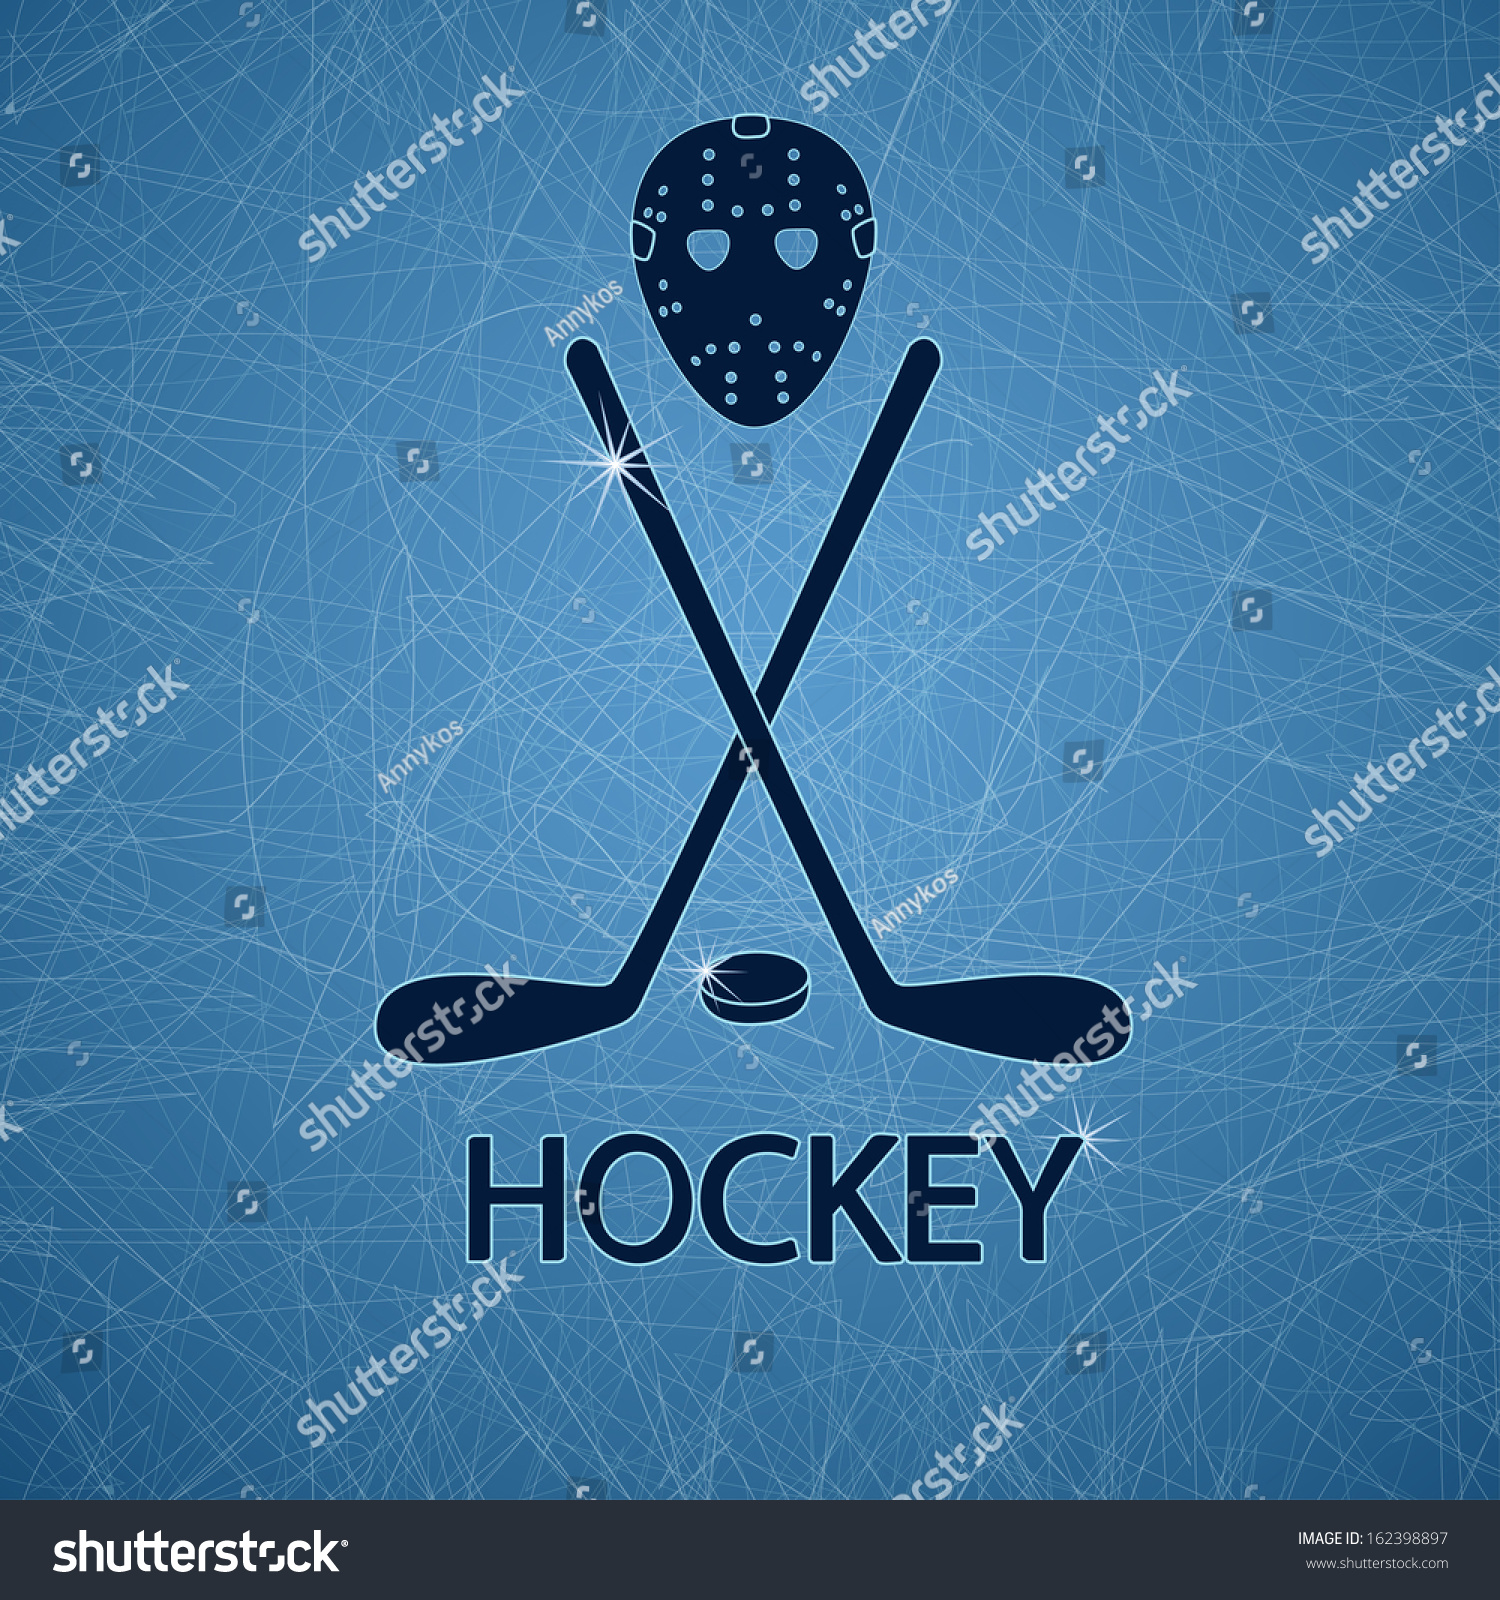 Illustration With Hockey Mask, Sticks And Puck On A Ice